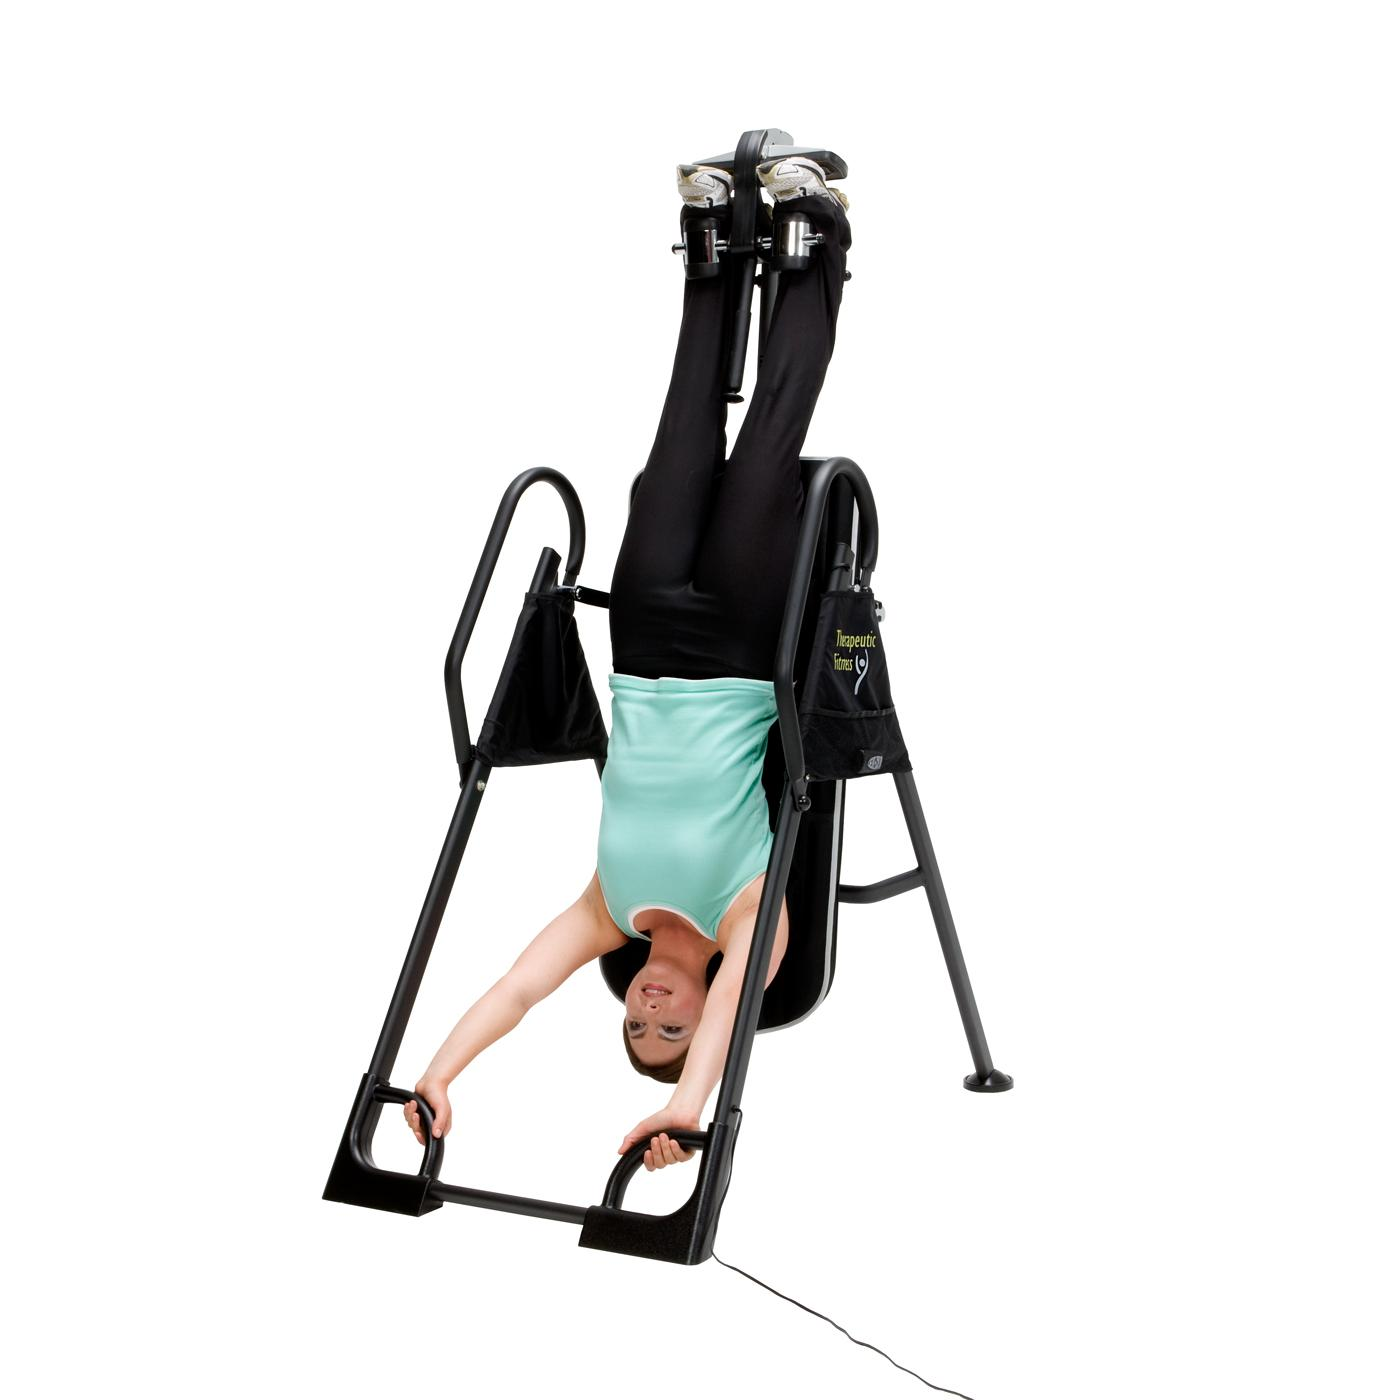 Amazon.com : Ironman IFT 4000 Infrared Therapy Inversion ...